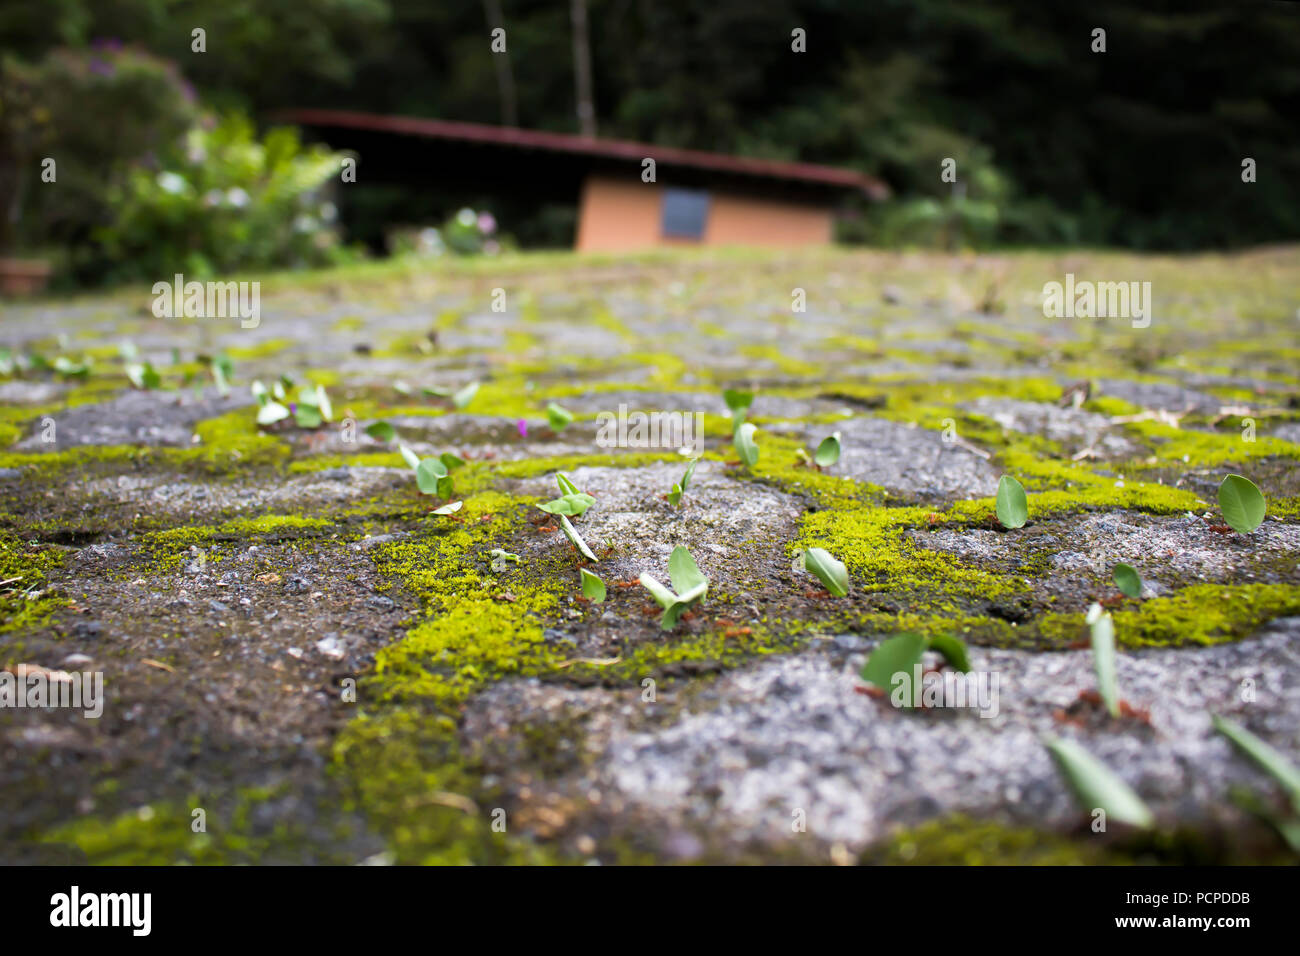 Low angle view line of leaf cutter ants marching on rocks and moss - Stock Image